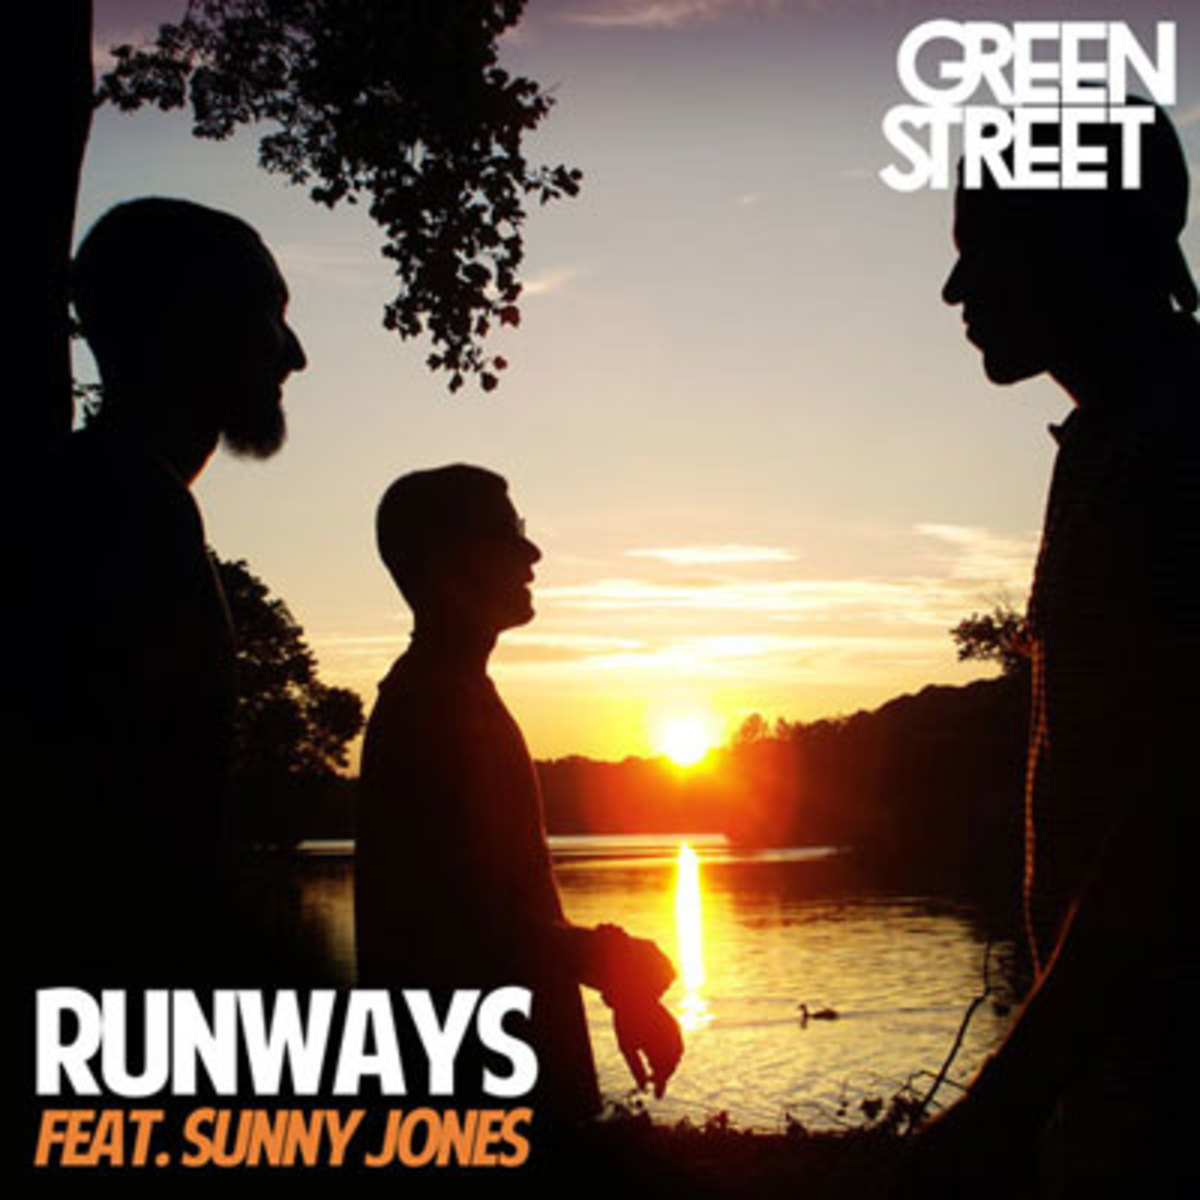 greenstreet-runways.jpg